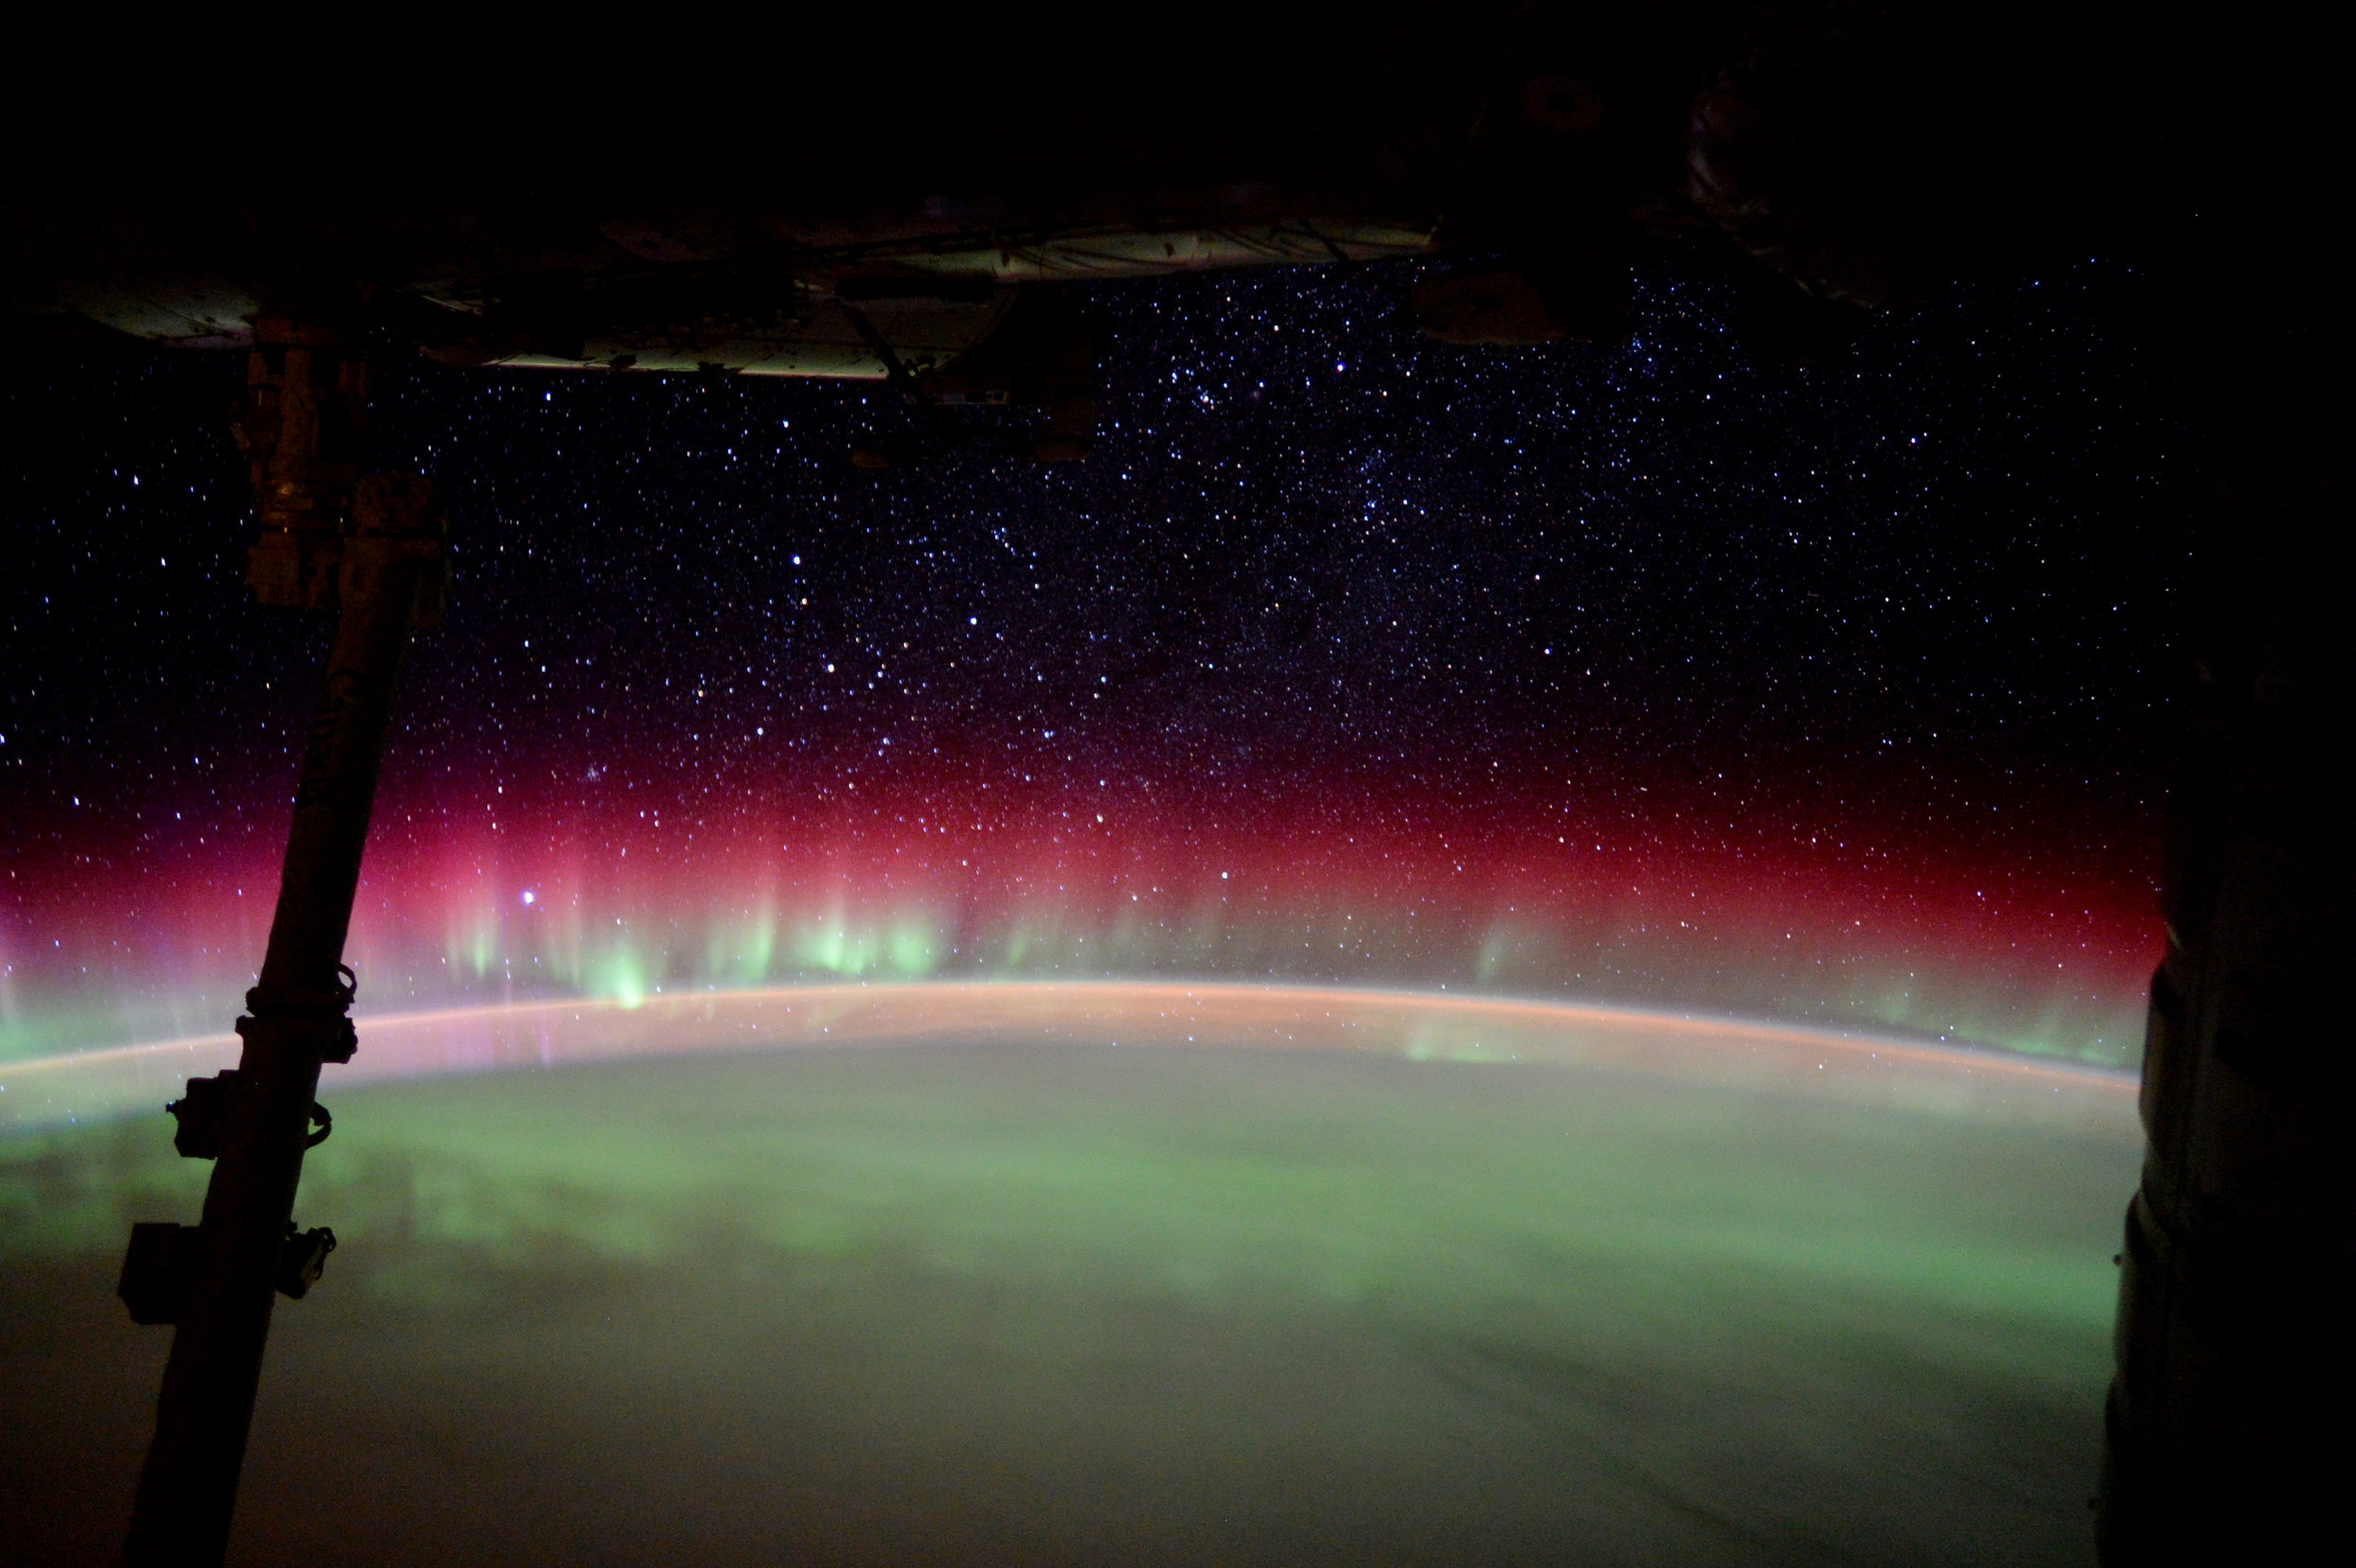 "ESA astronaut Tim Peake posted this stunning image on his social media channels, commenting: ""Station passed through magnificent aurora Australis last night."" Image credit: ESA/NASA CC BY-SA 3.0 IGO"